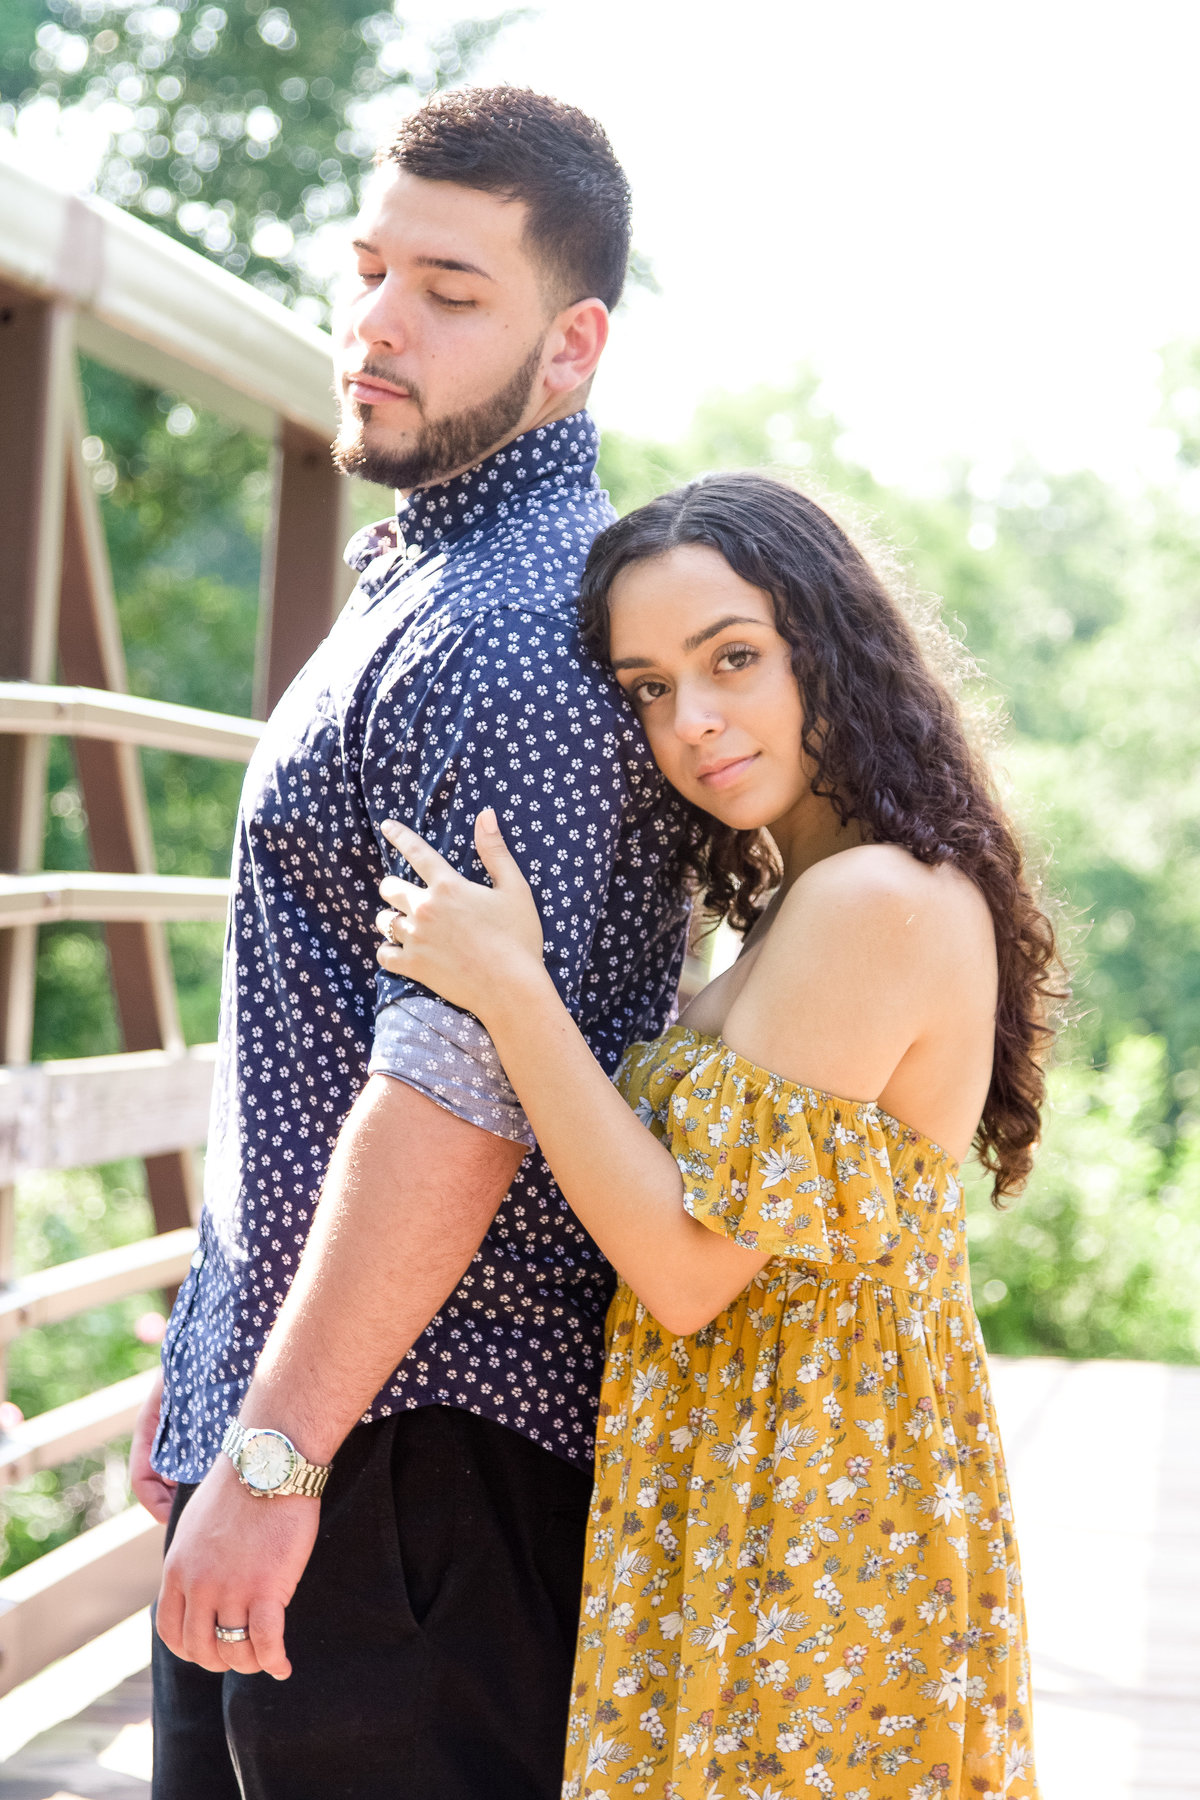 Scar-Vita-Photography-Engagement-Session-Colonial-Park-NJ-15